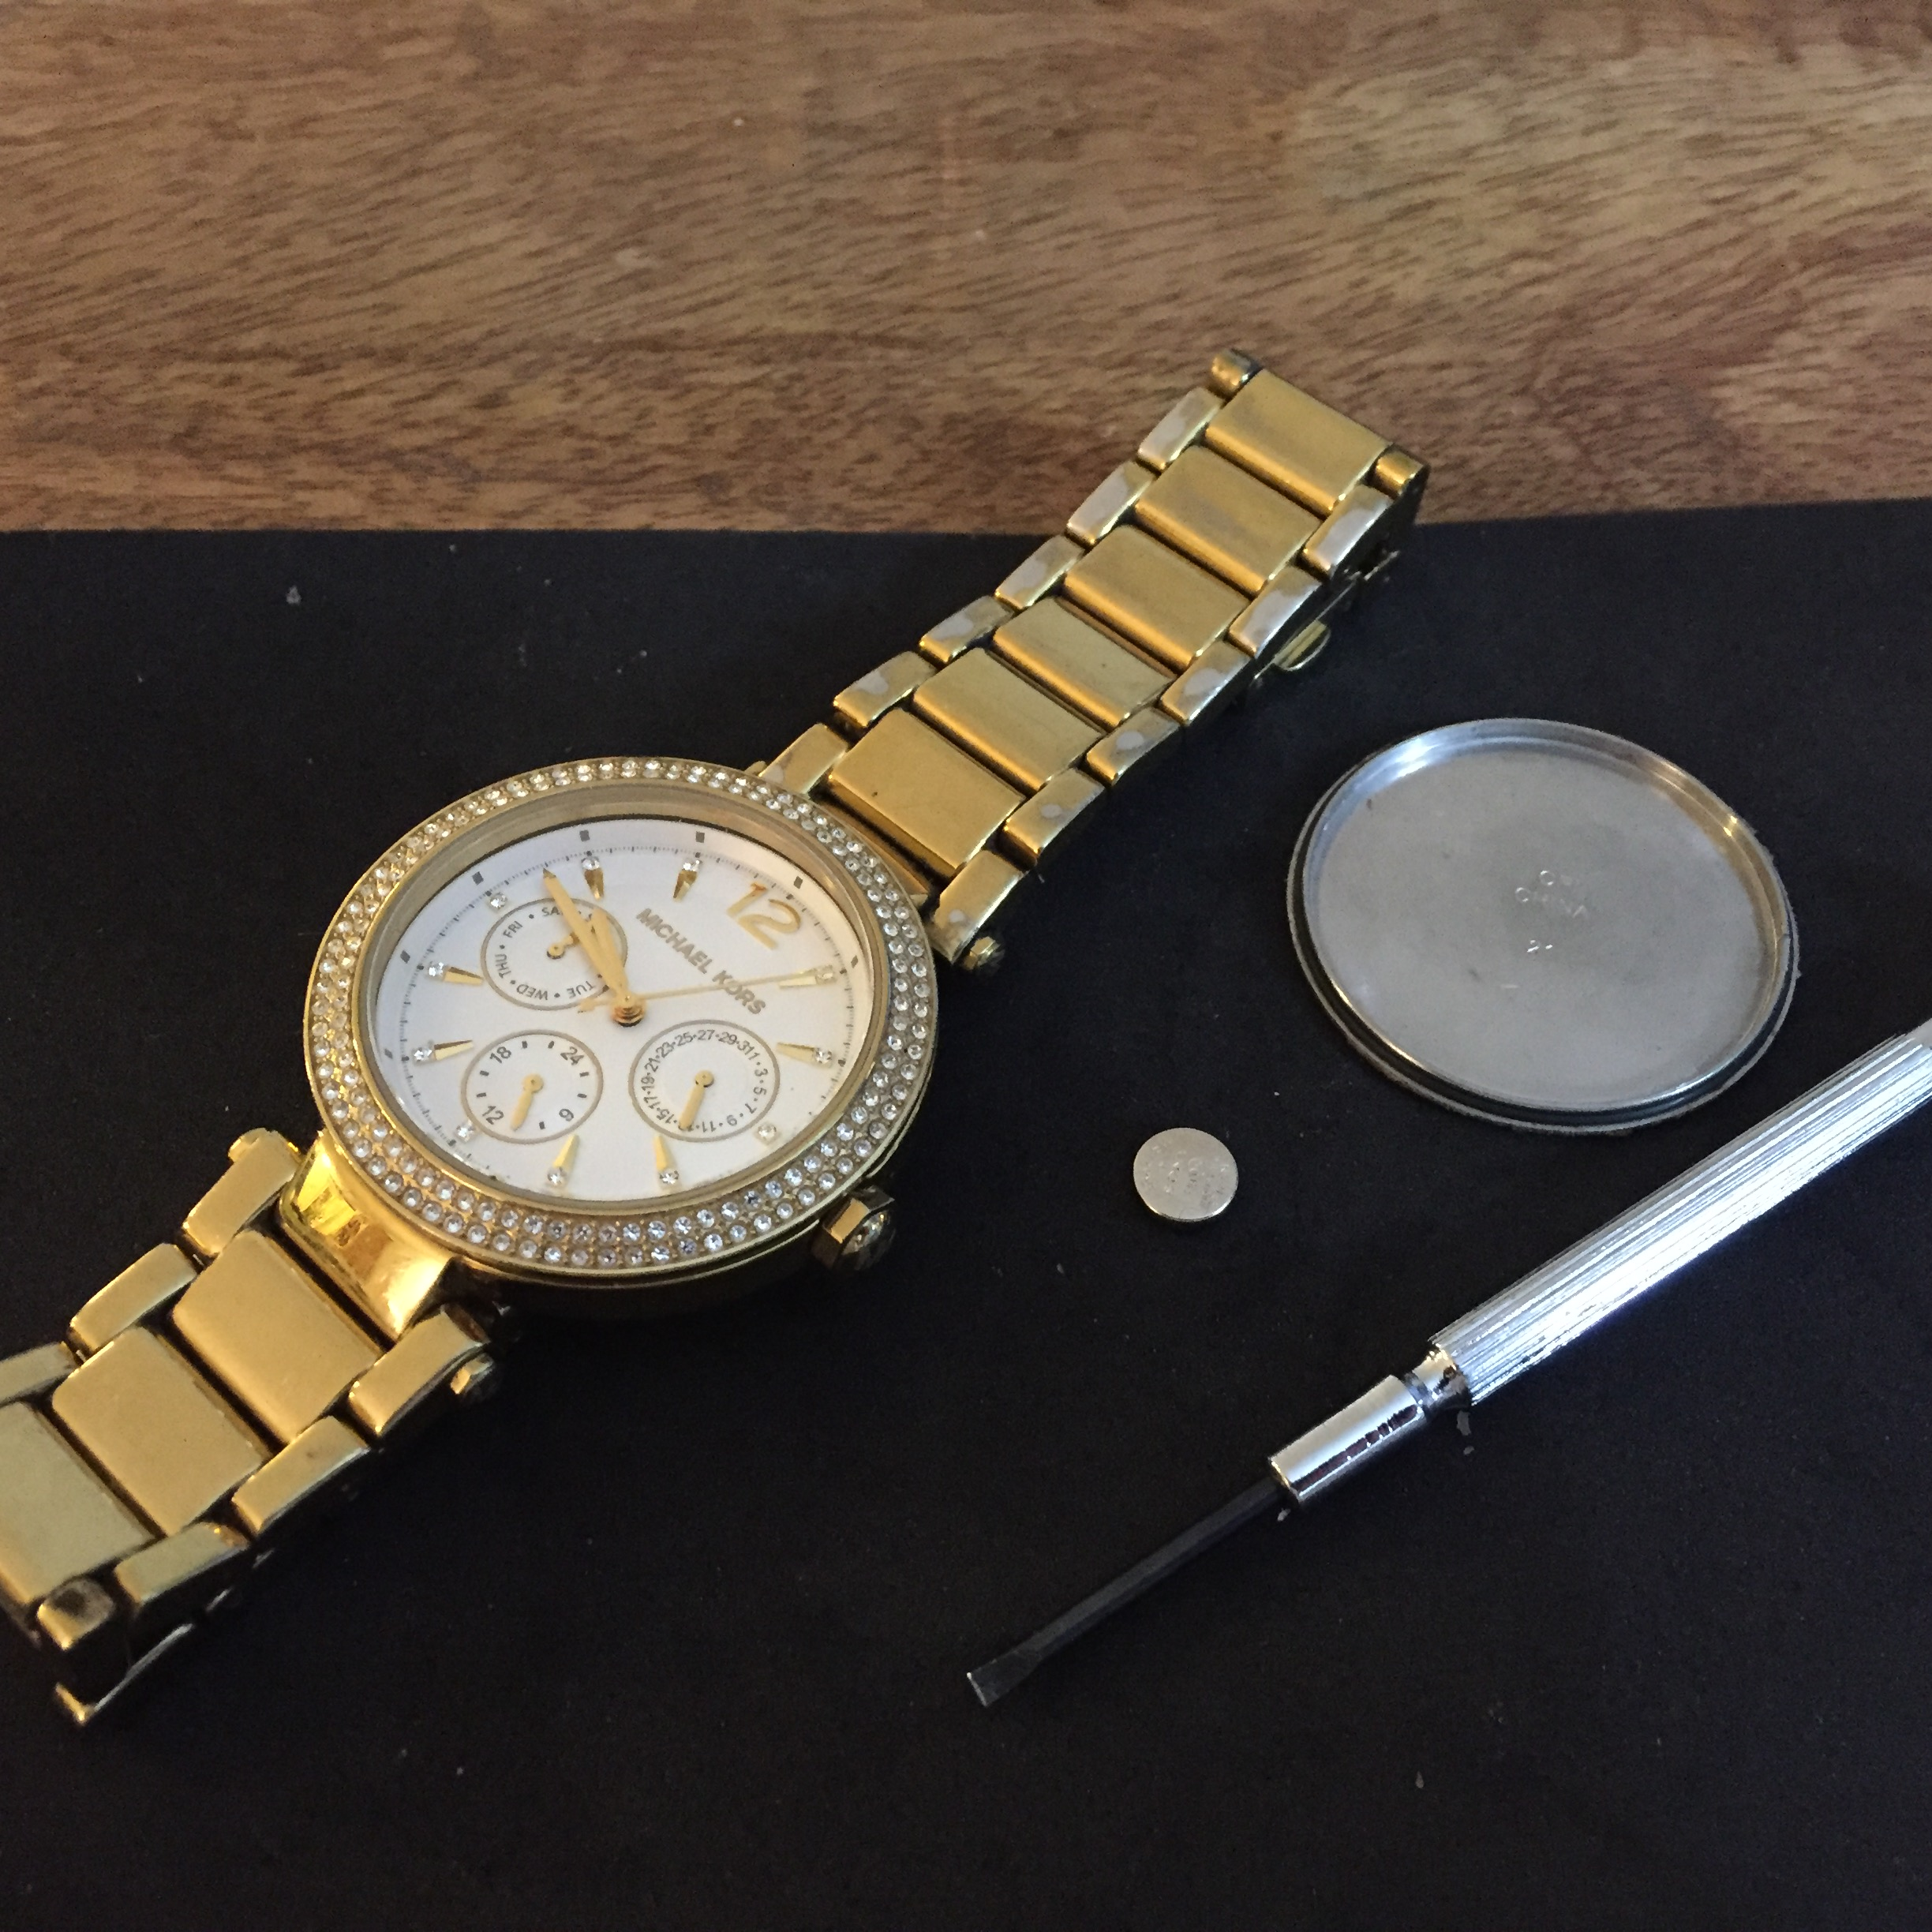 How to change the date on michael kors watch in Melbourne